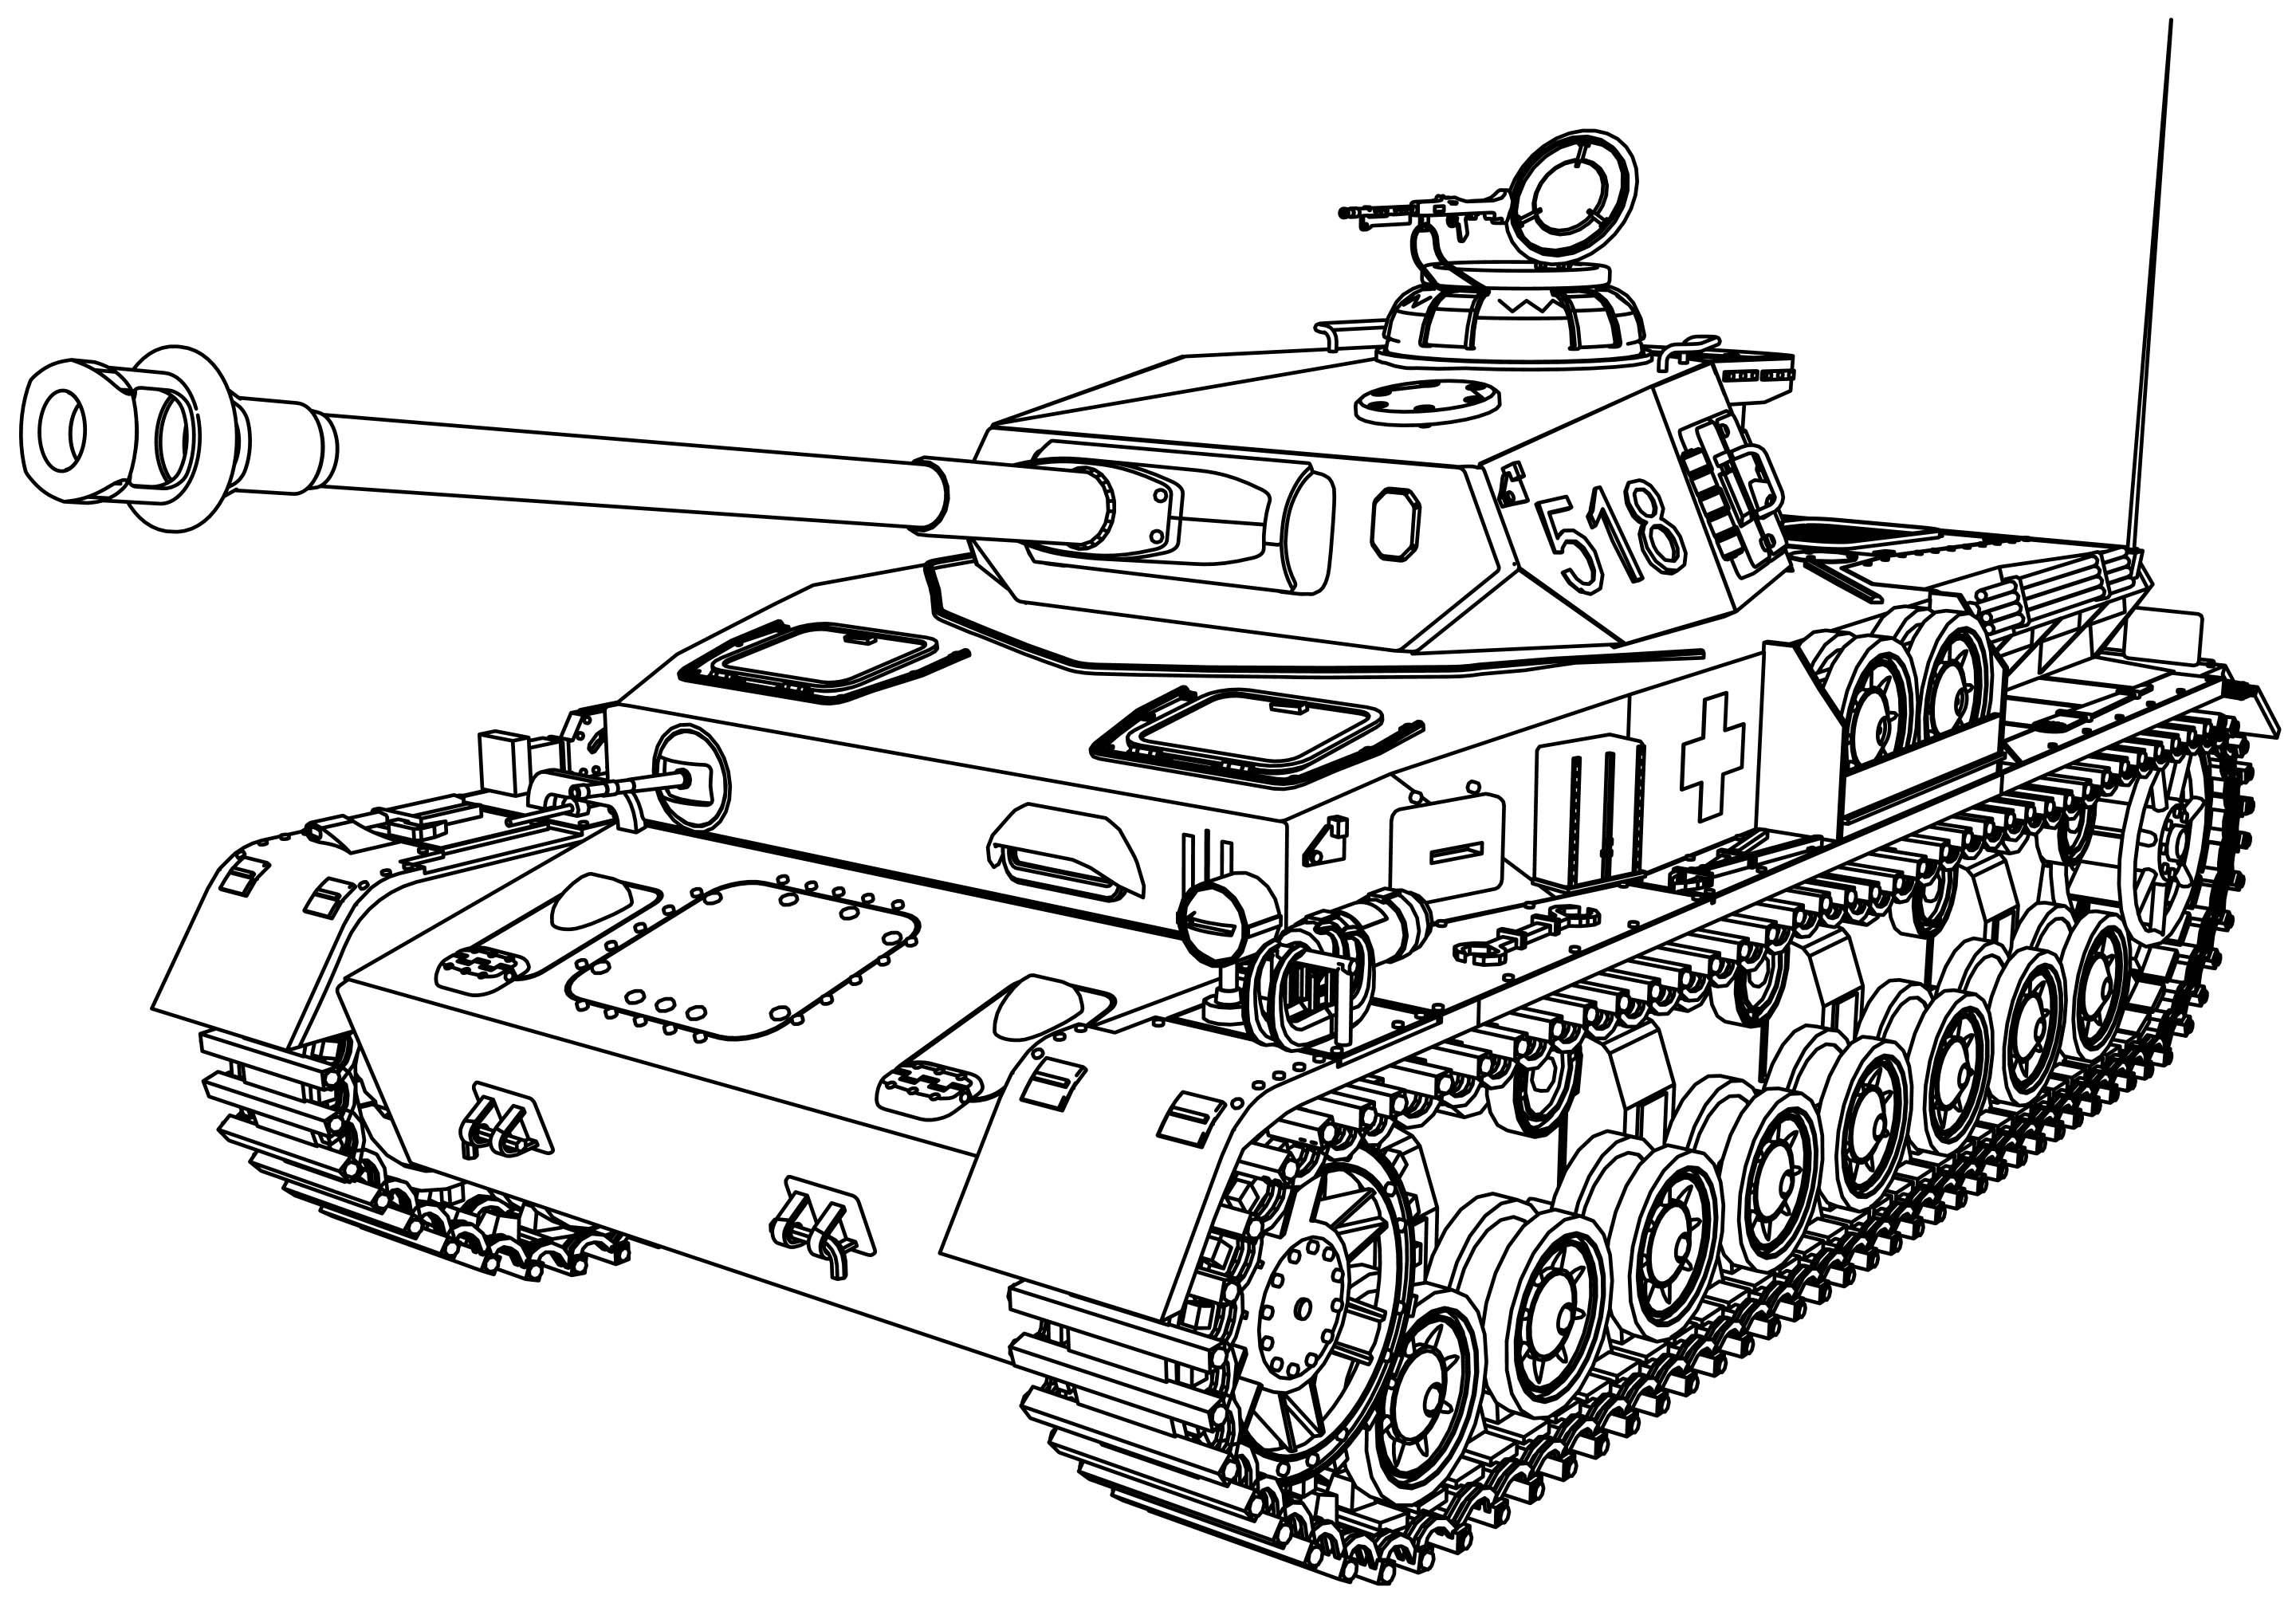 8 Top Tank Coloring Pages In 2021 Truck Coloring Pages Tank Drawing Coloring Pages